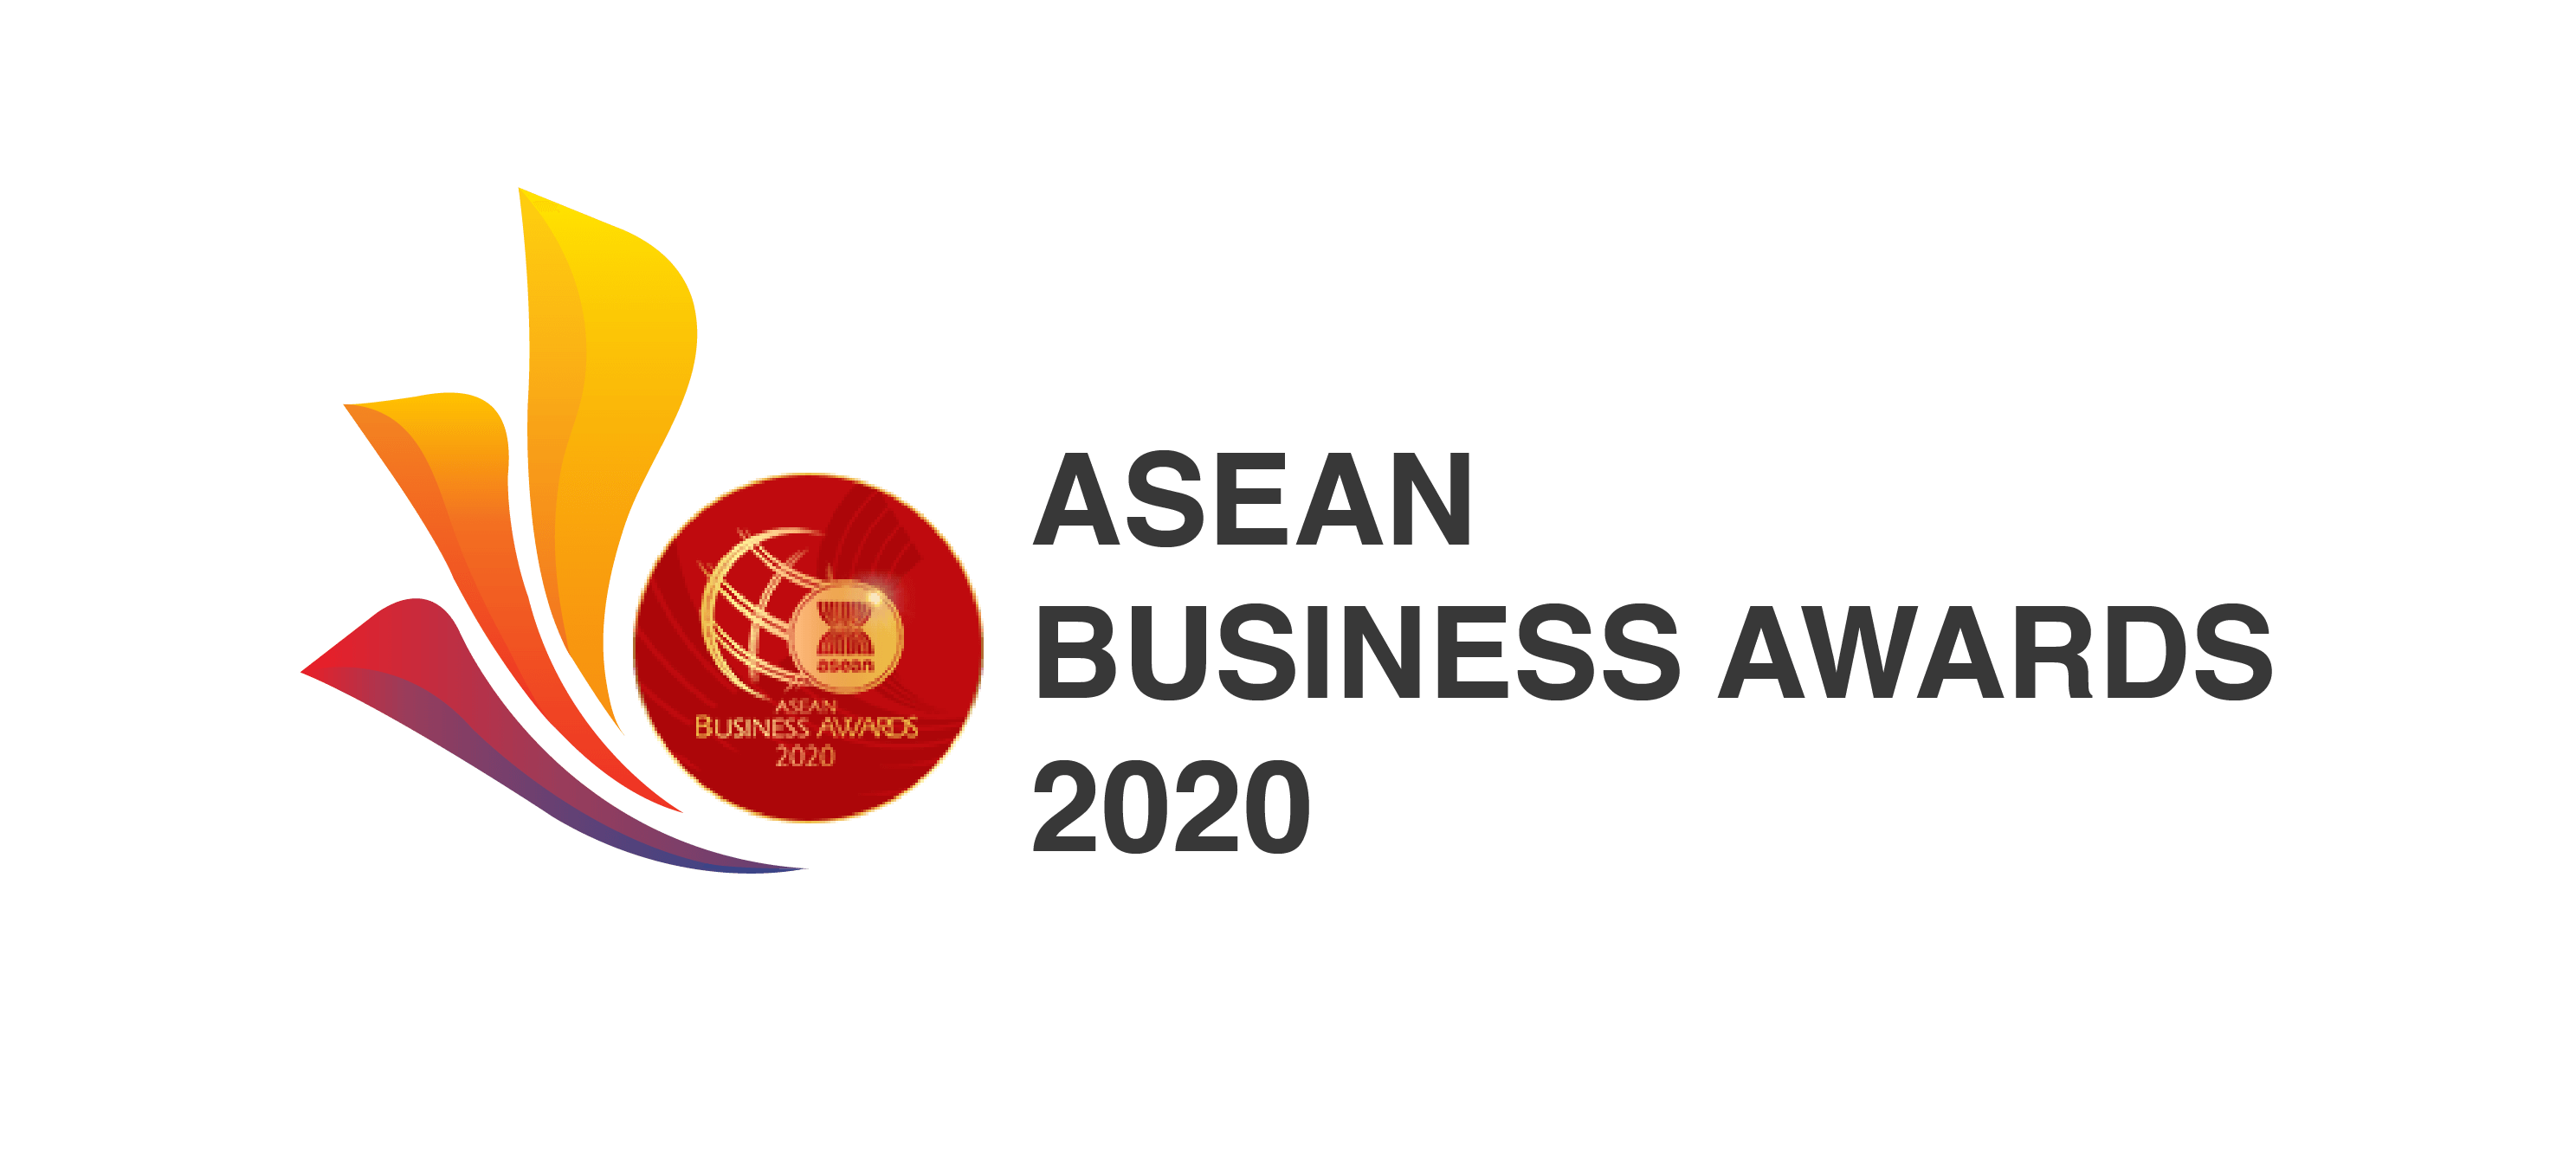 FindJobs ASEAN Business Awards